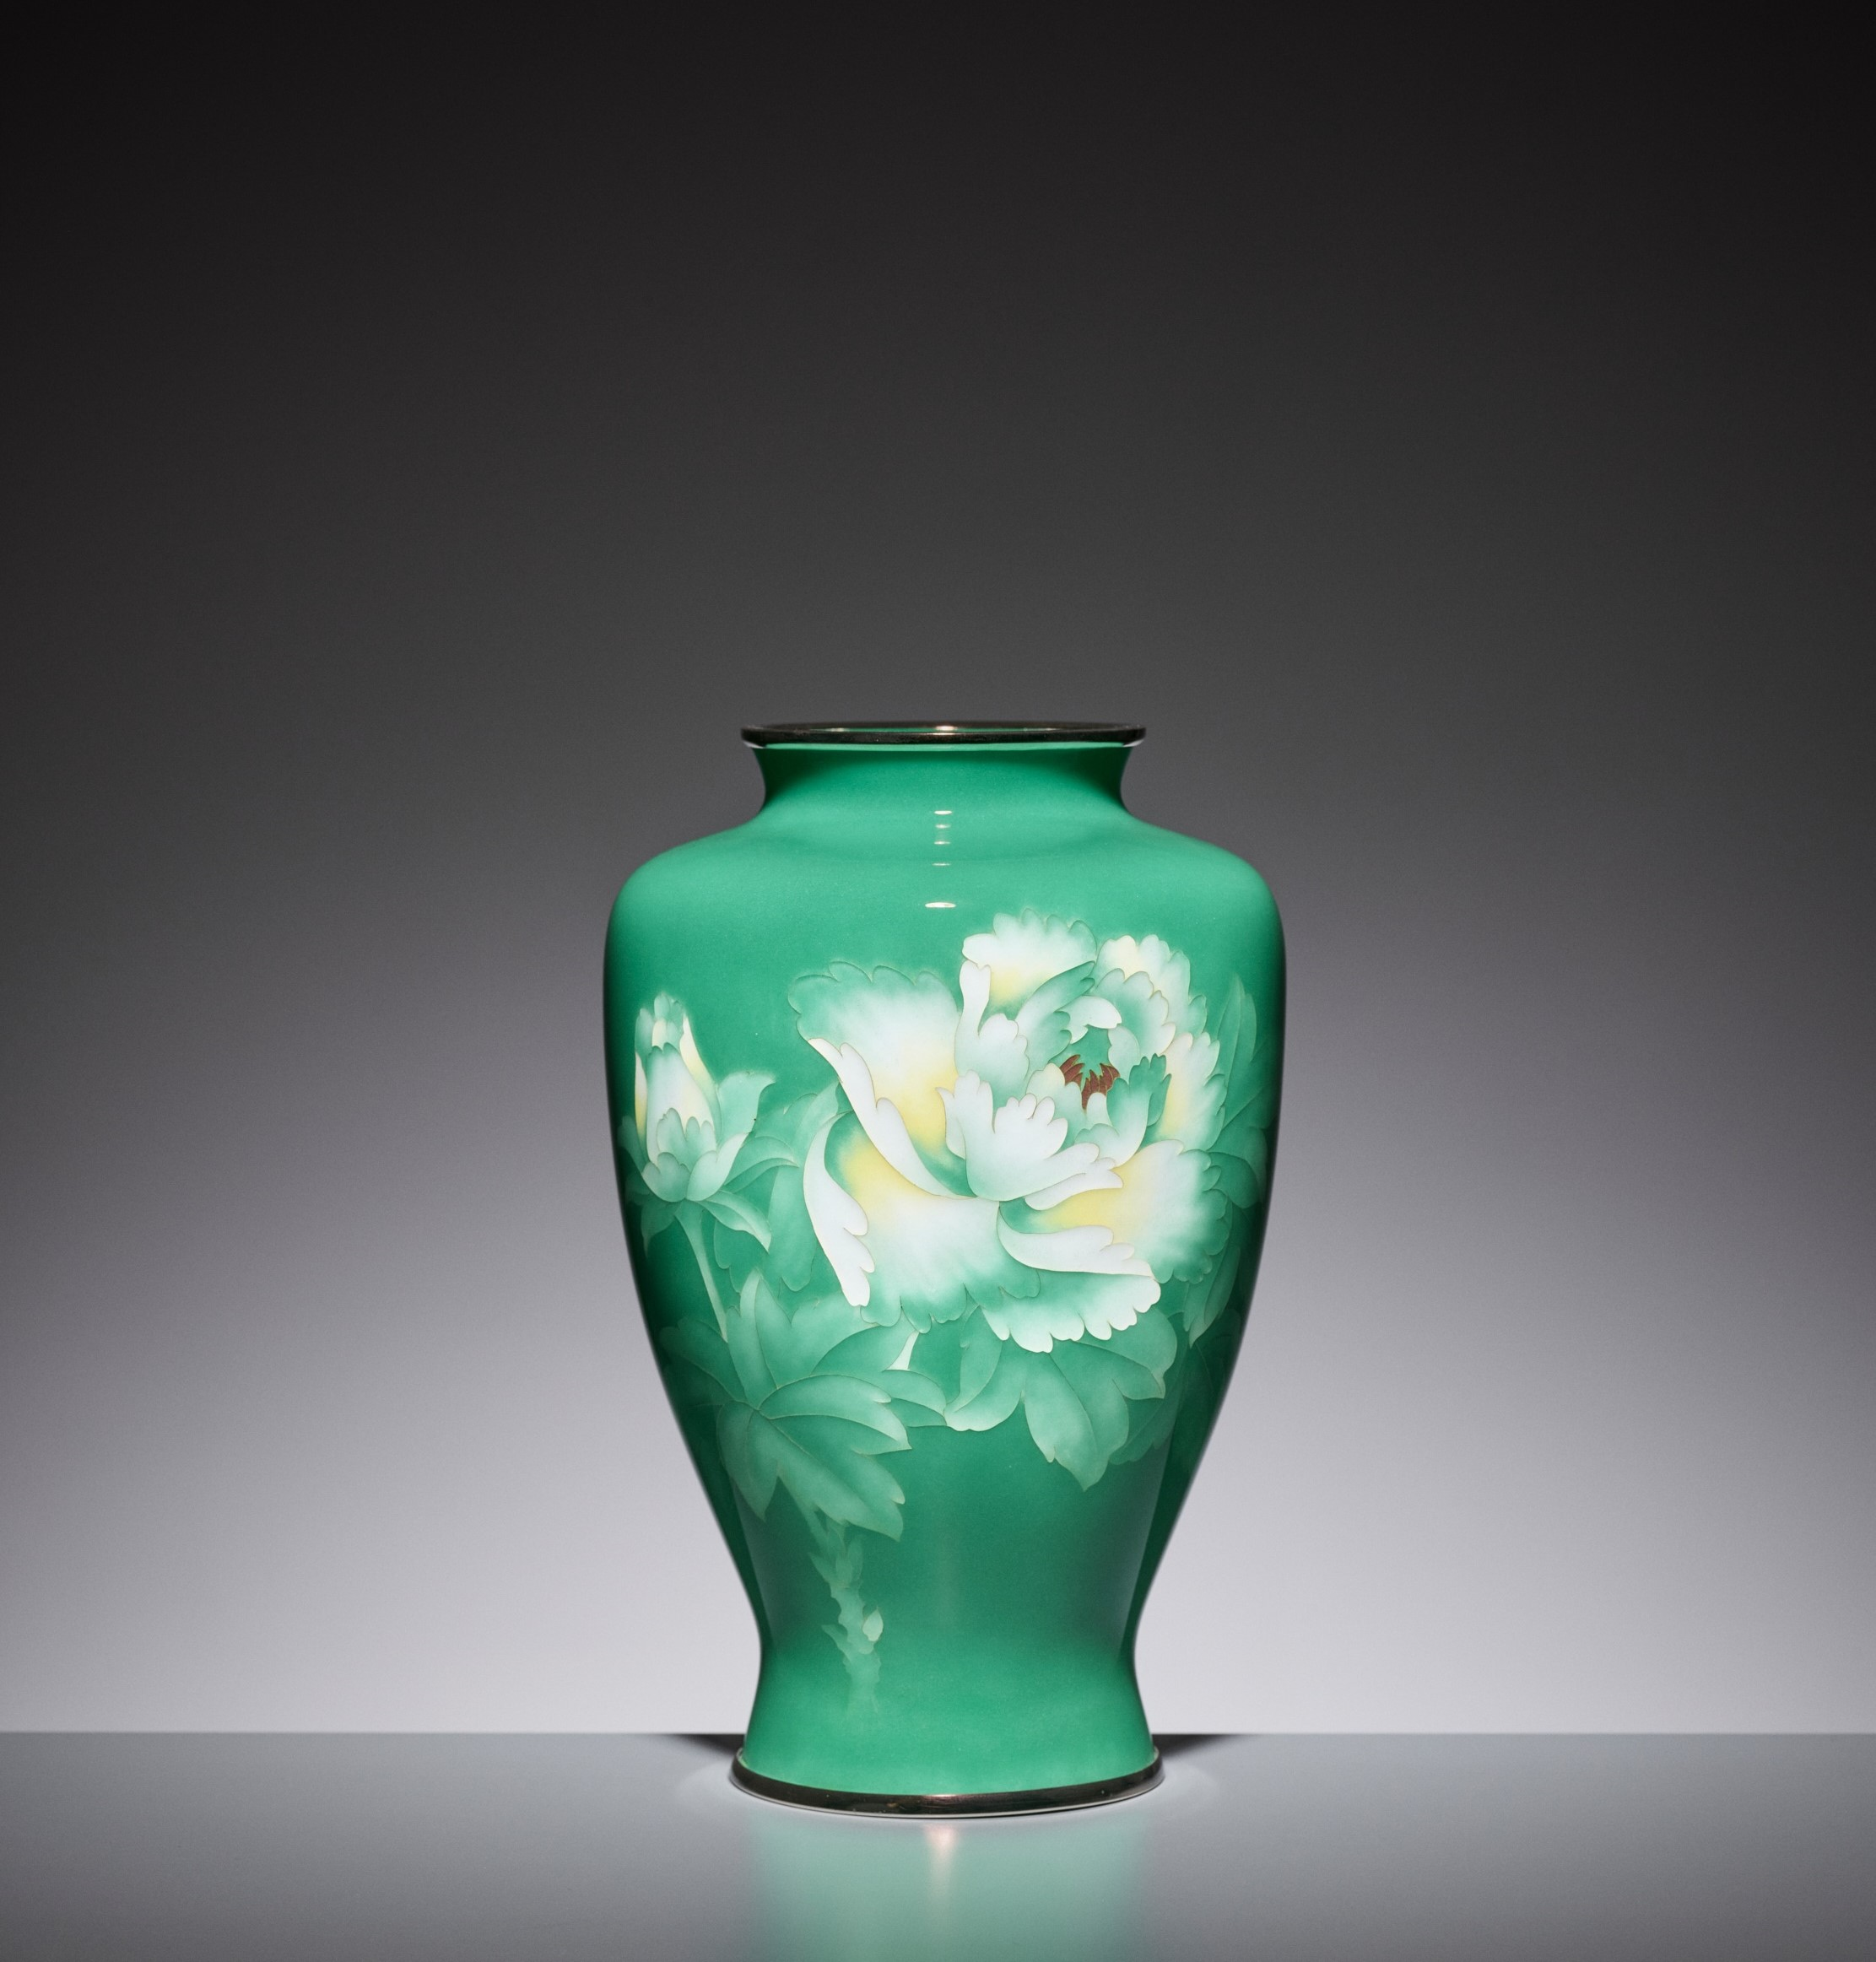 AN EMERALD GREEN CLOISONNE ENAMEL VASE WITH PEONY, ATTRIBUTED TO THE WORKSHOP OF ANDO JUBEI